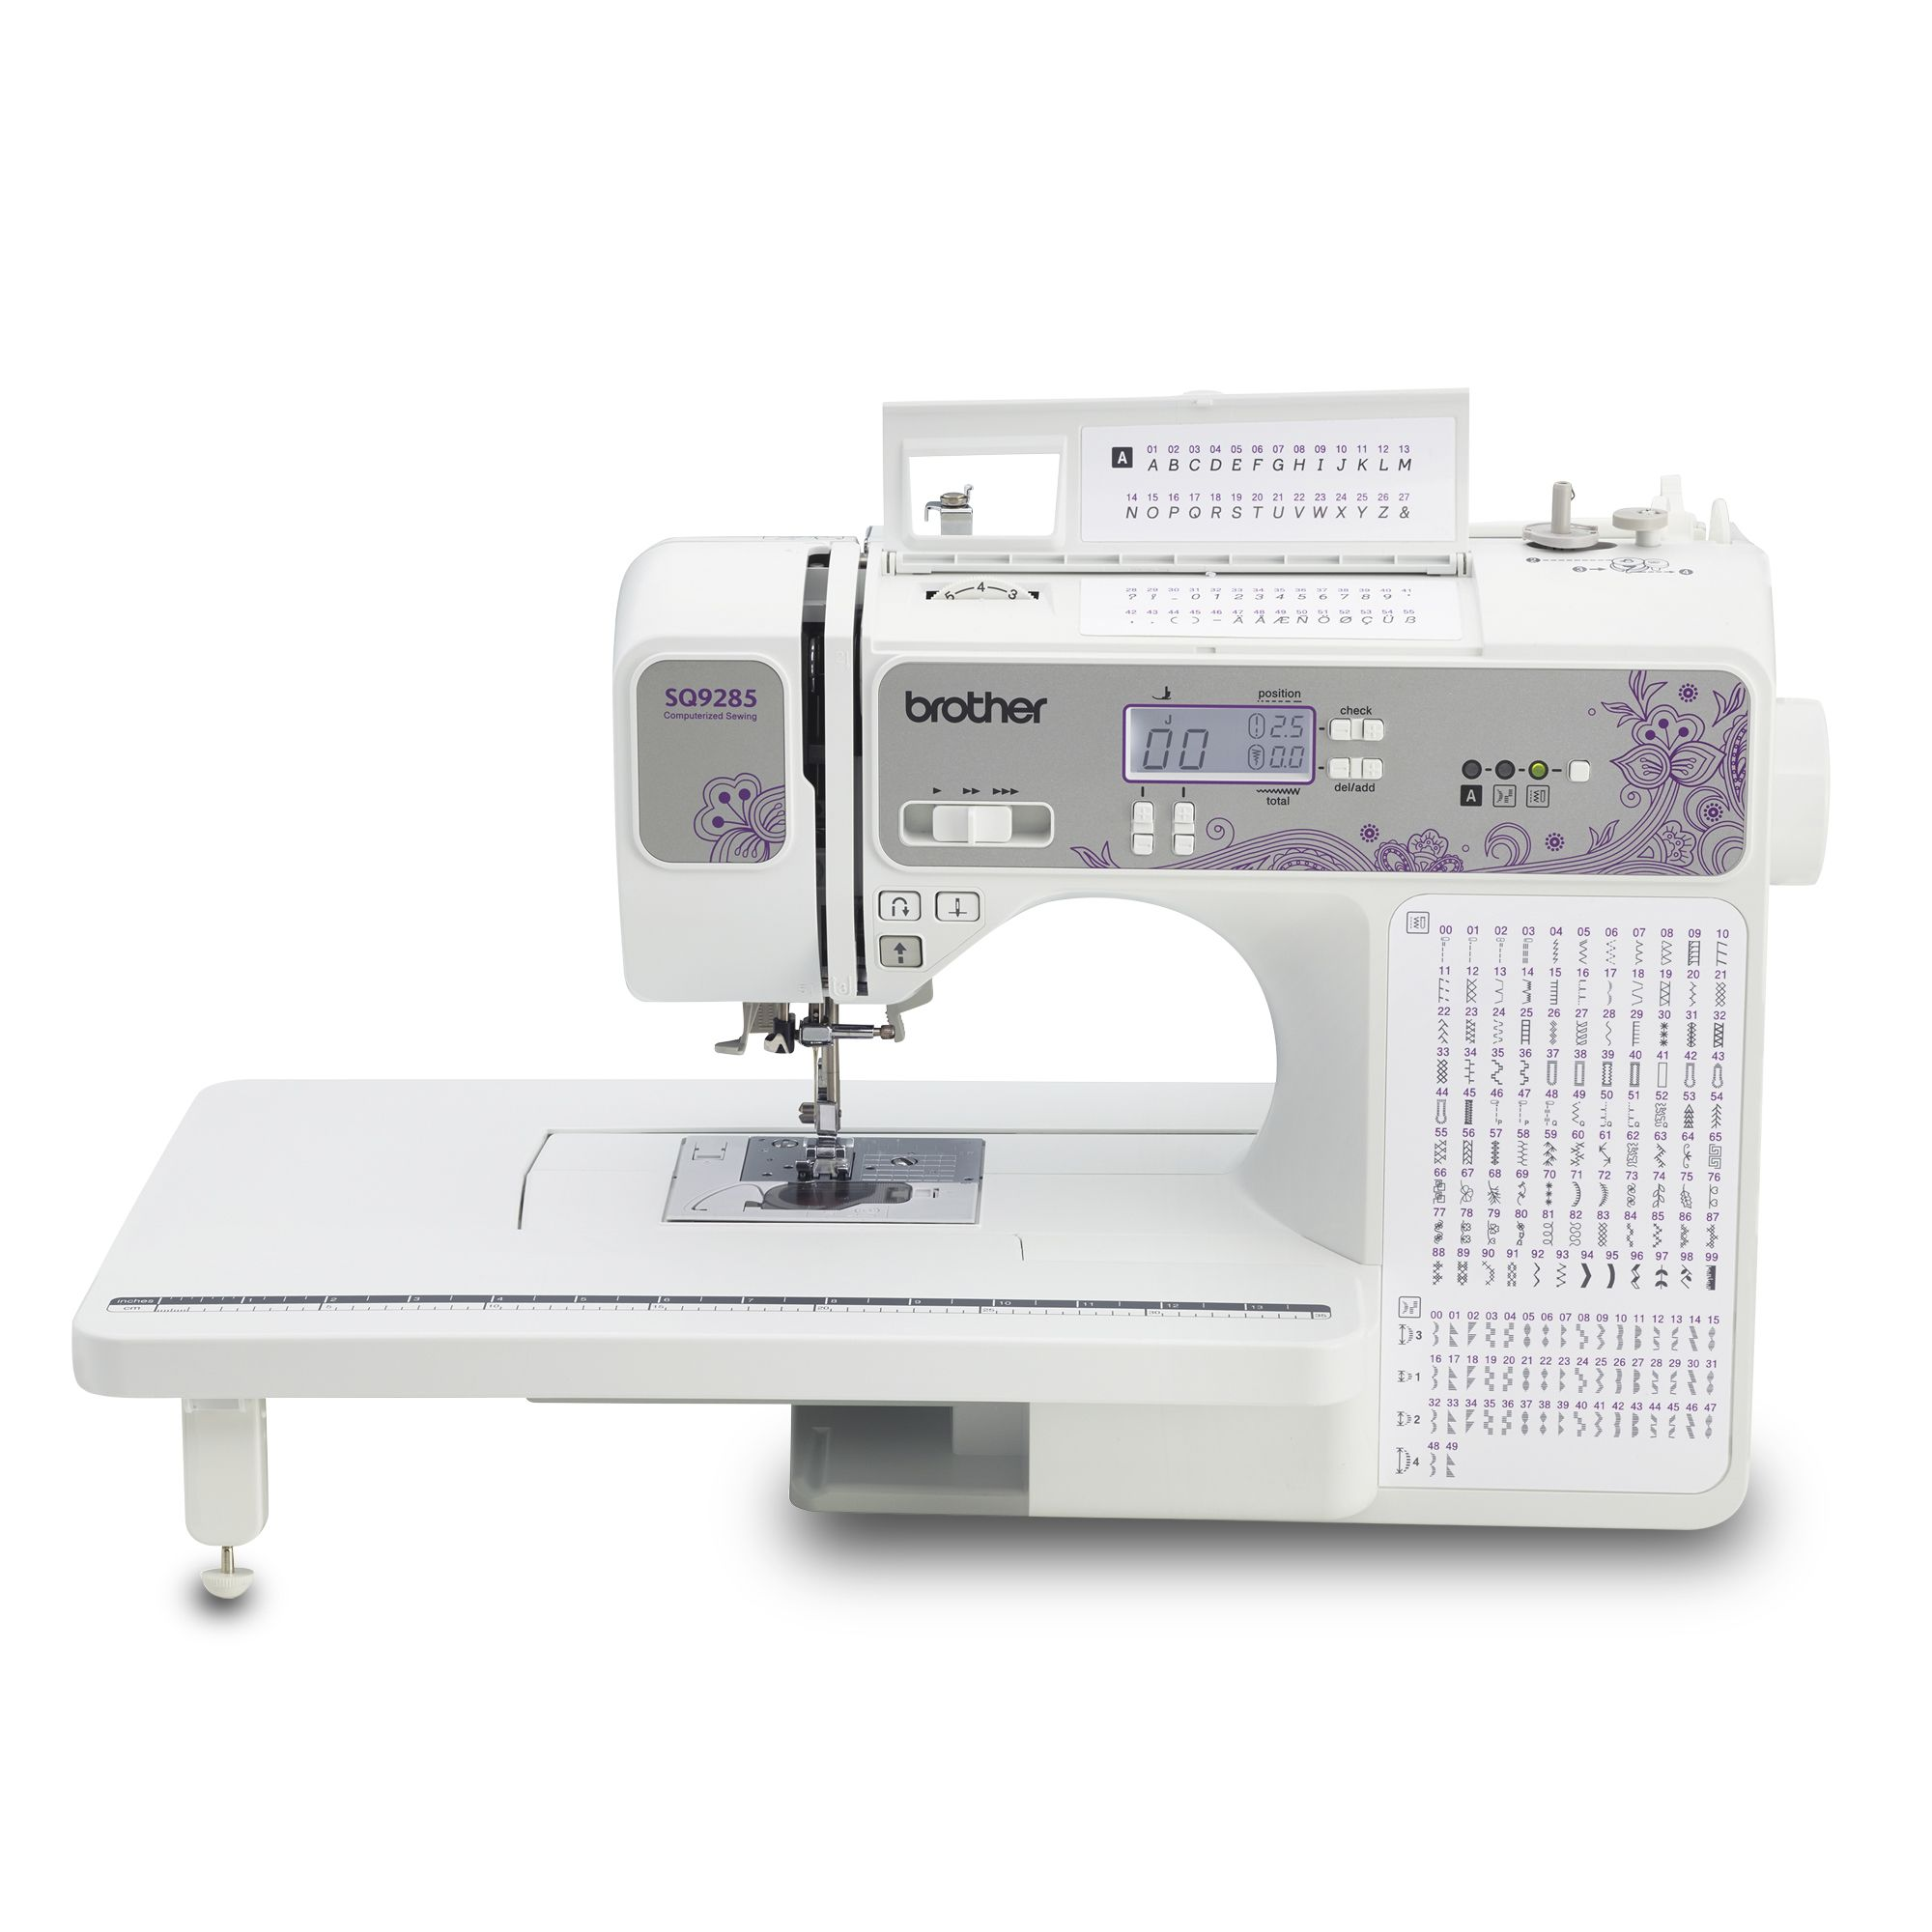 Brother Sq9285 Computerized Sewing Quilting Machine With 150 Stitches And Wide Table Walmart Com In 2020 Computerized Sewing Machine Quilting Sewing Machine